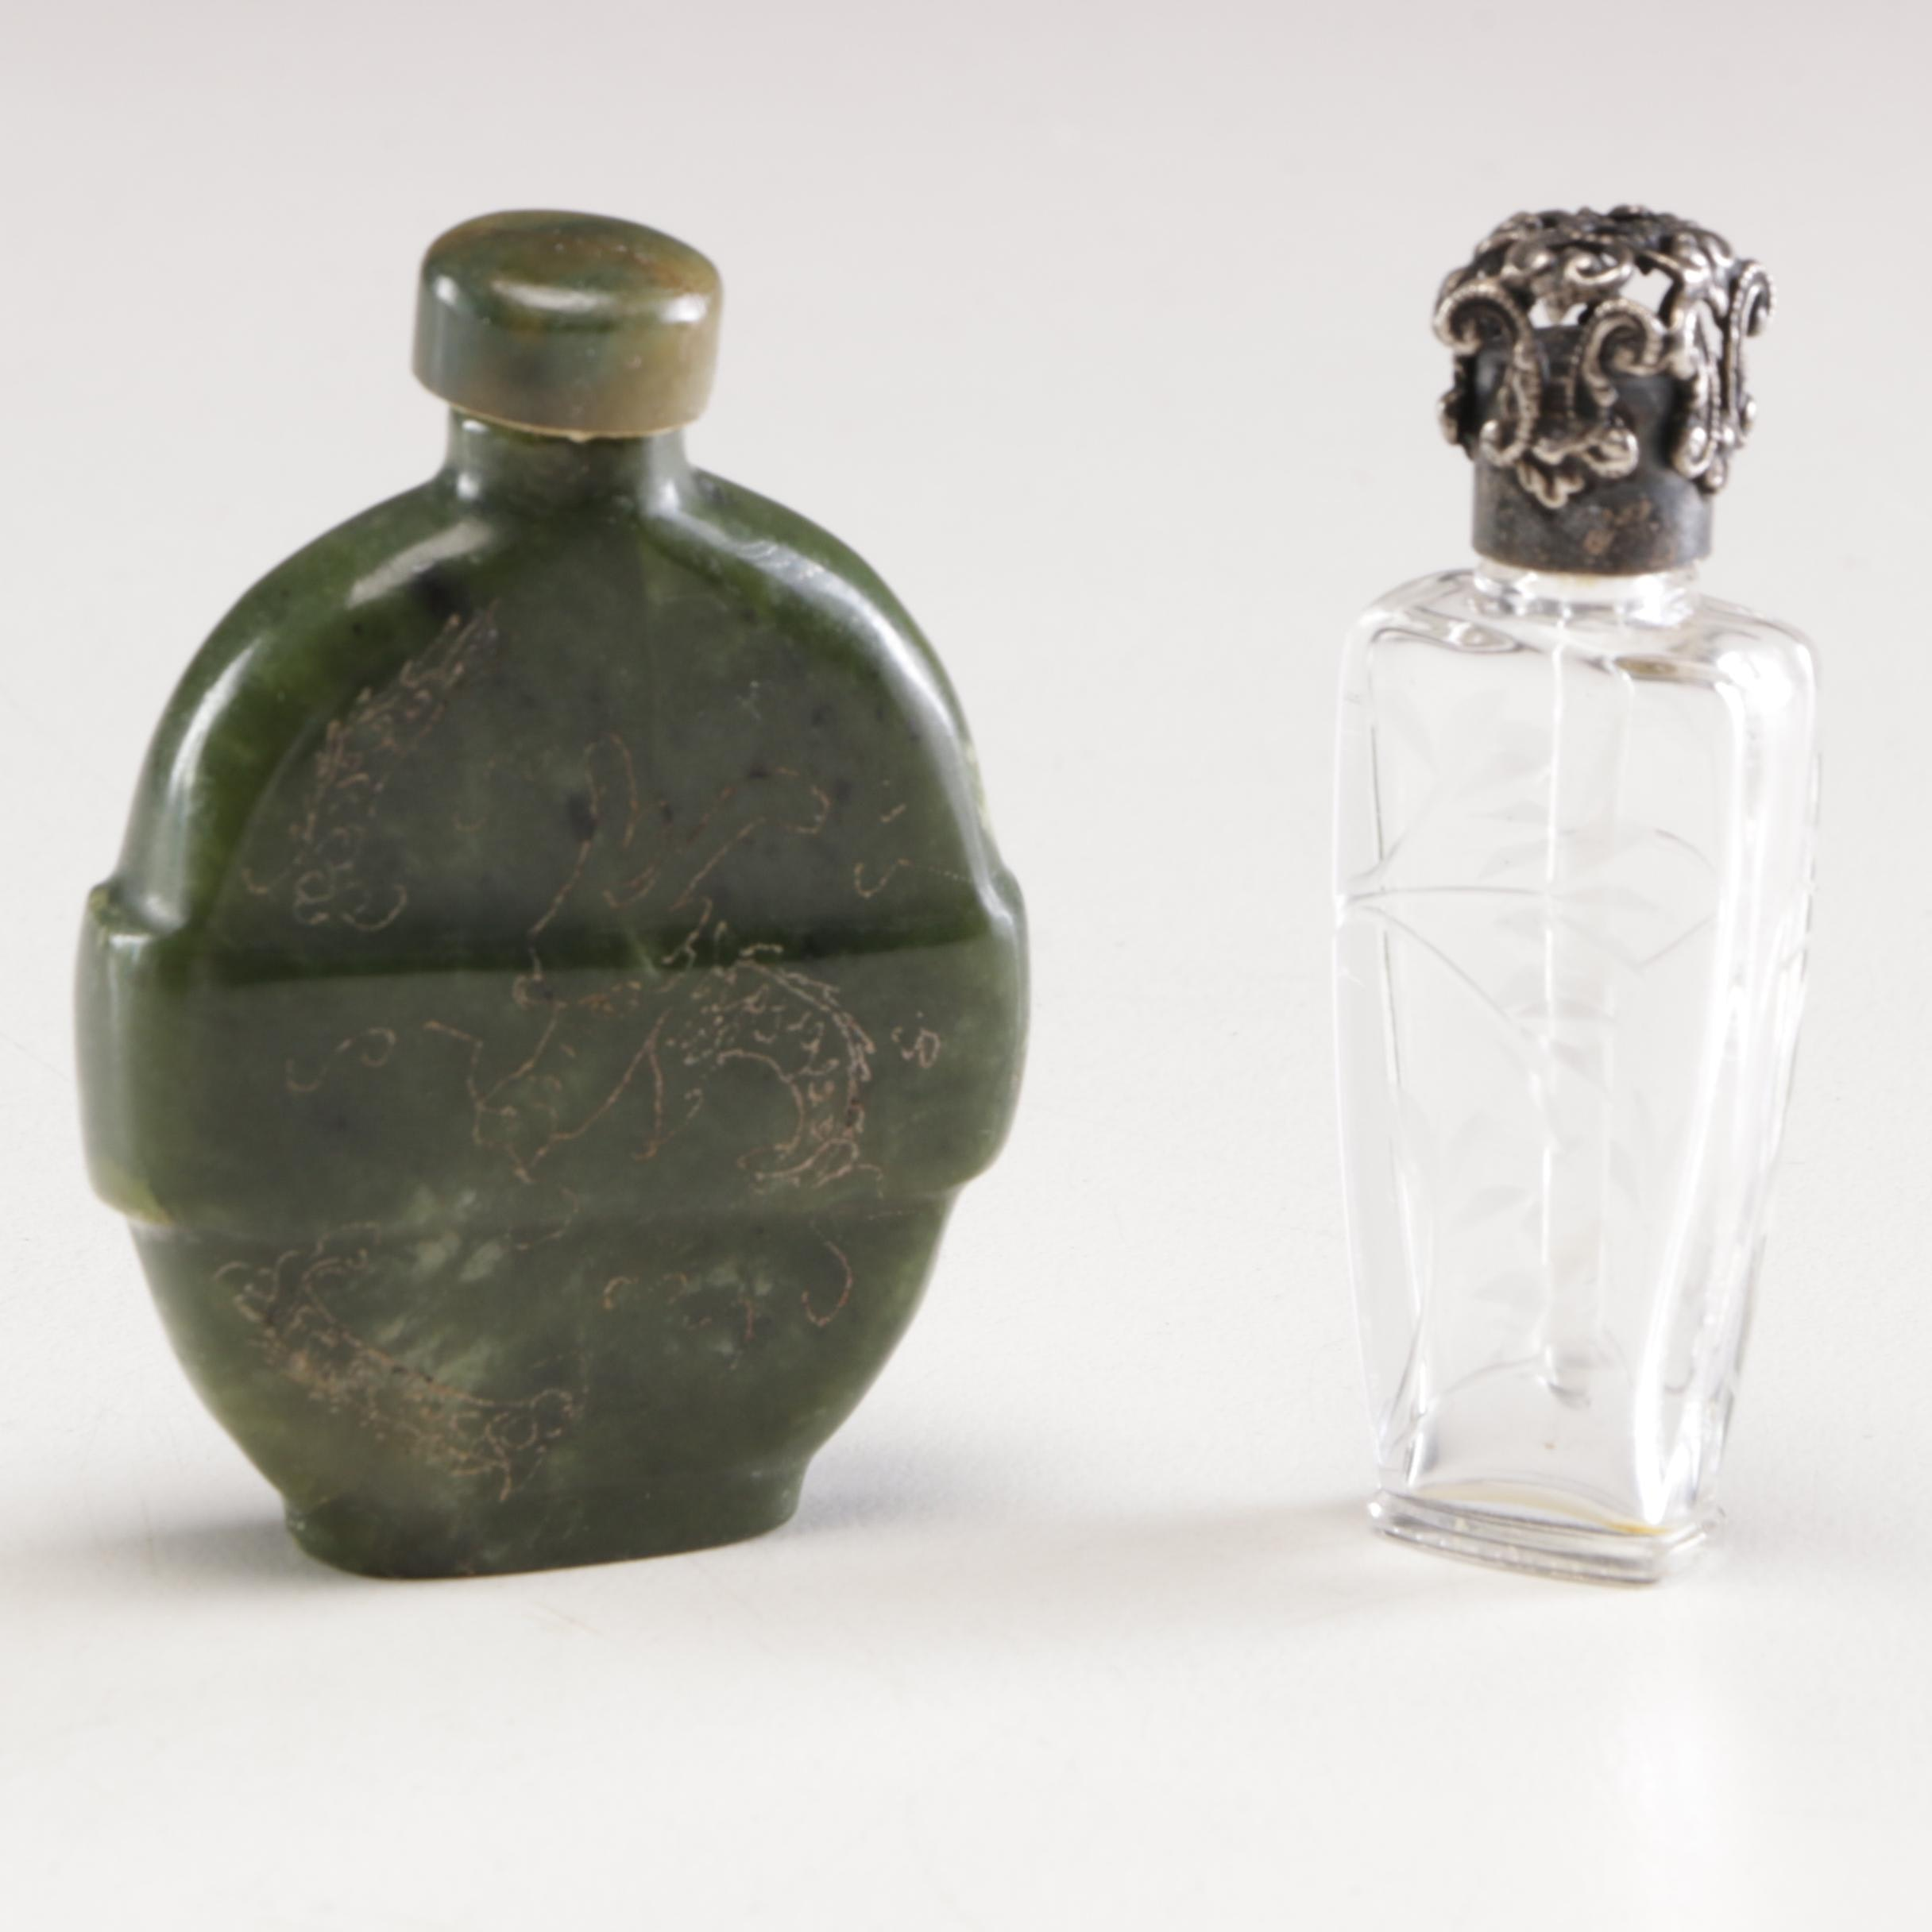 Chinese Jade Snuff Bottle and Porcelain Perfume Bottle